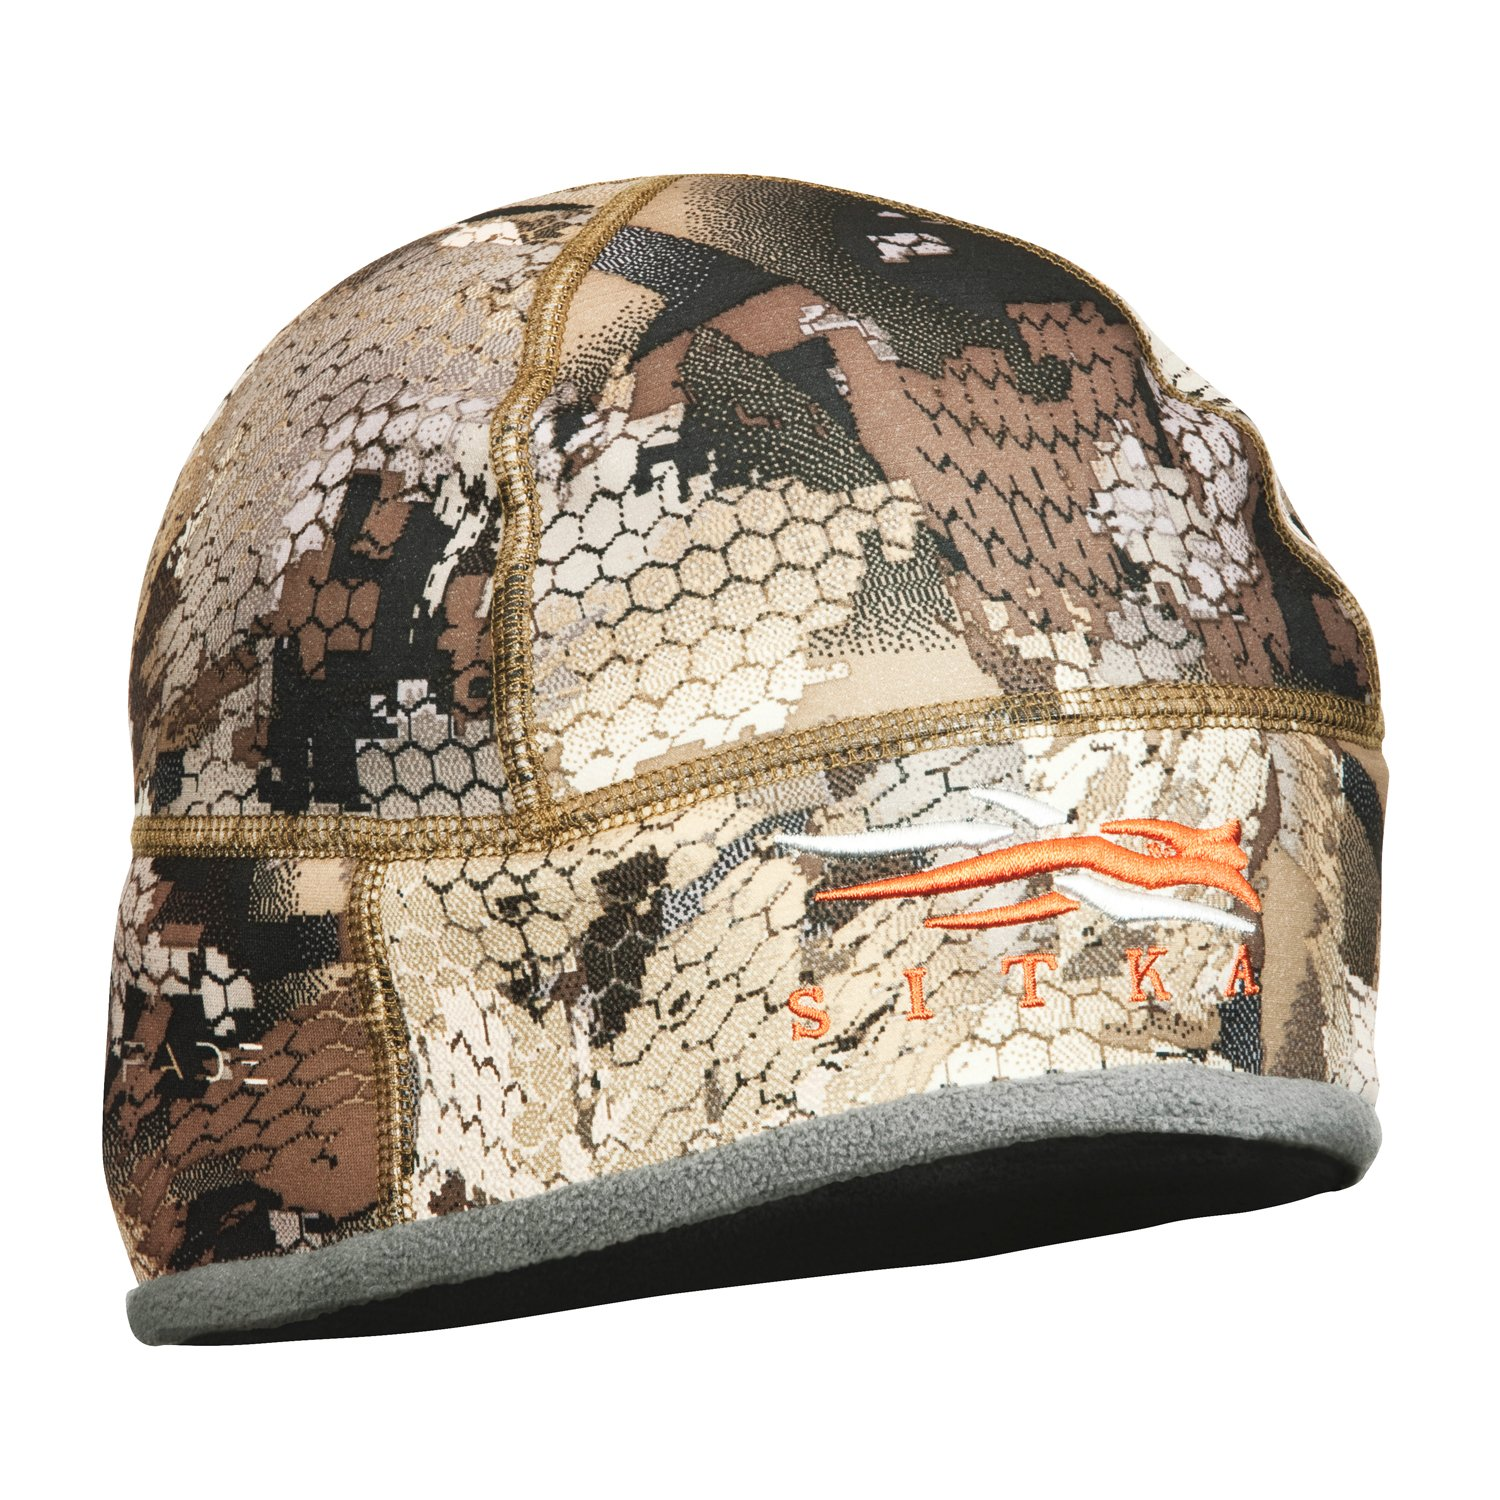 SITKA Gear Dakota Windstopper Beanie Optifade Waterfowl One Size Fits All by SITKA